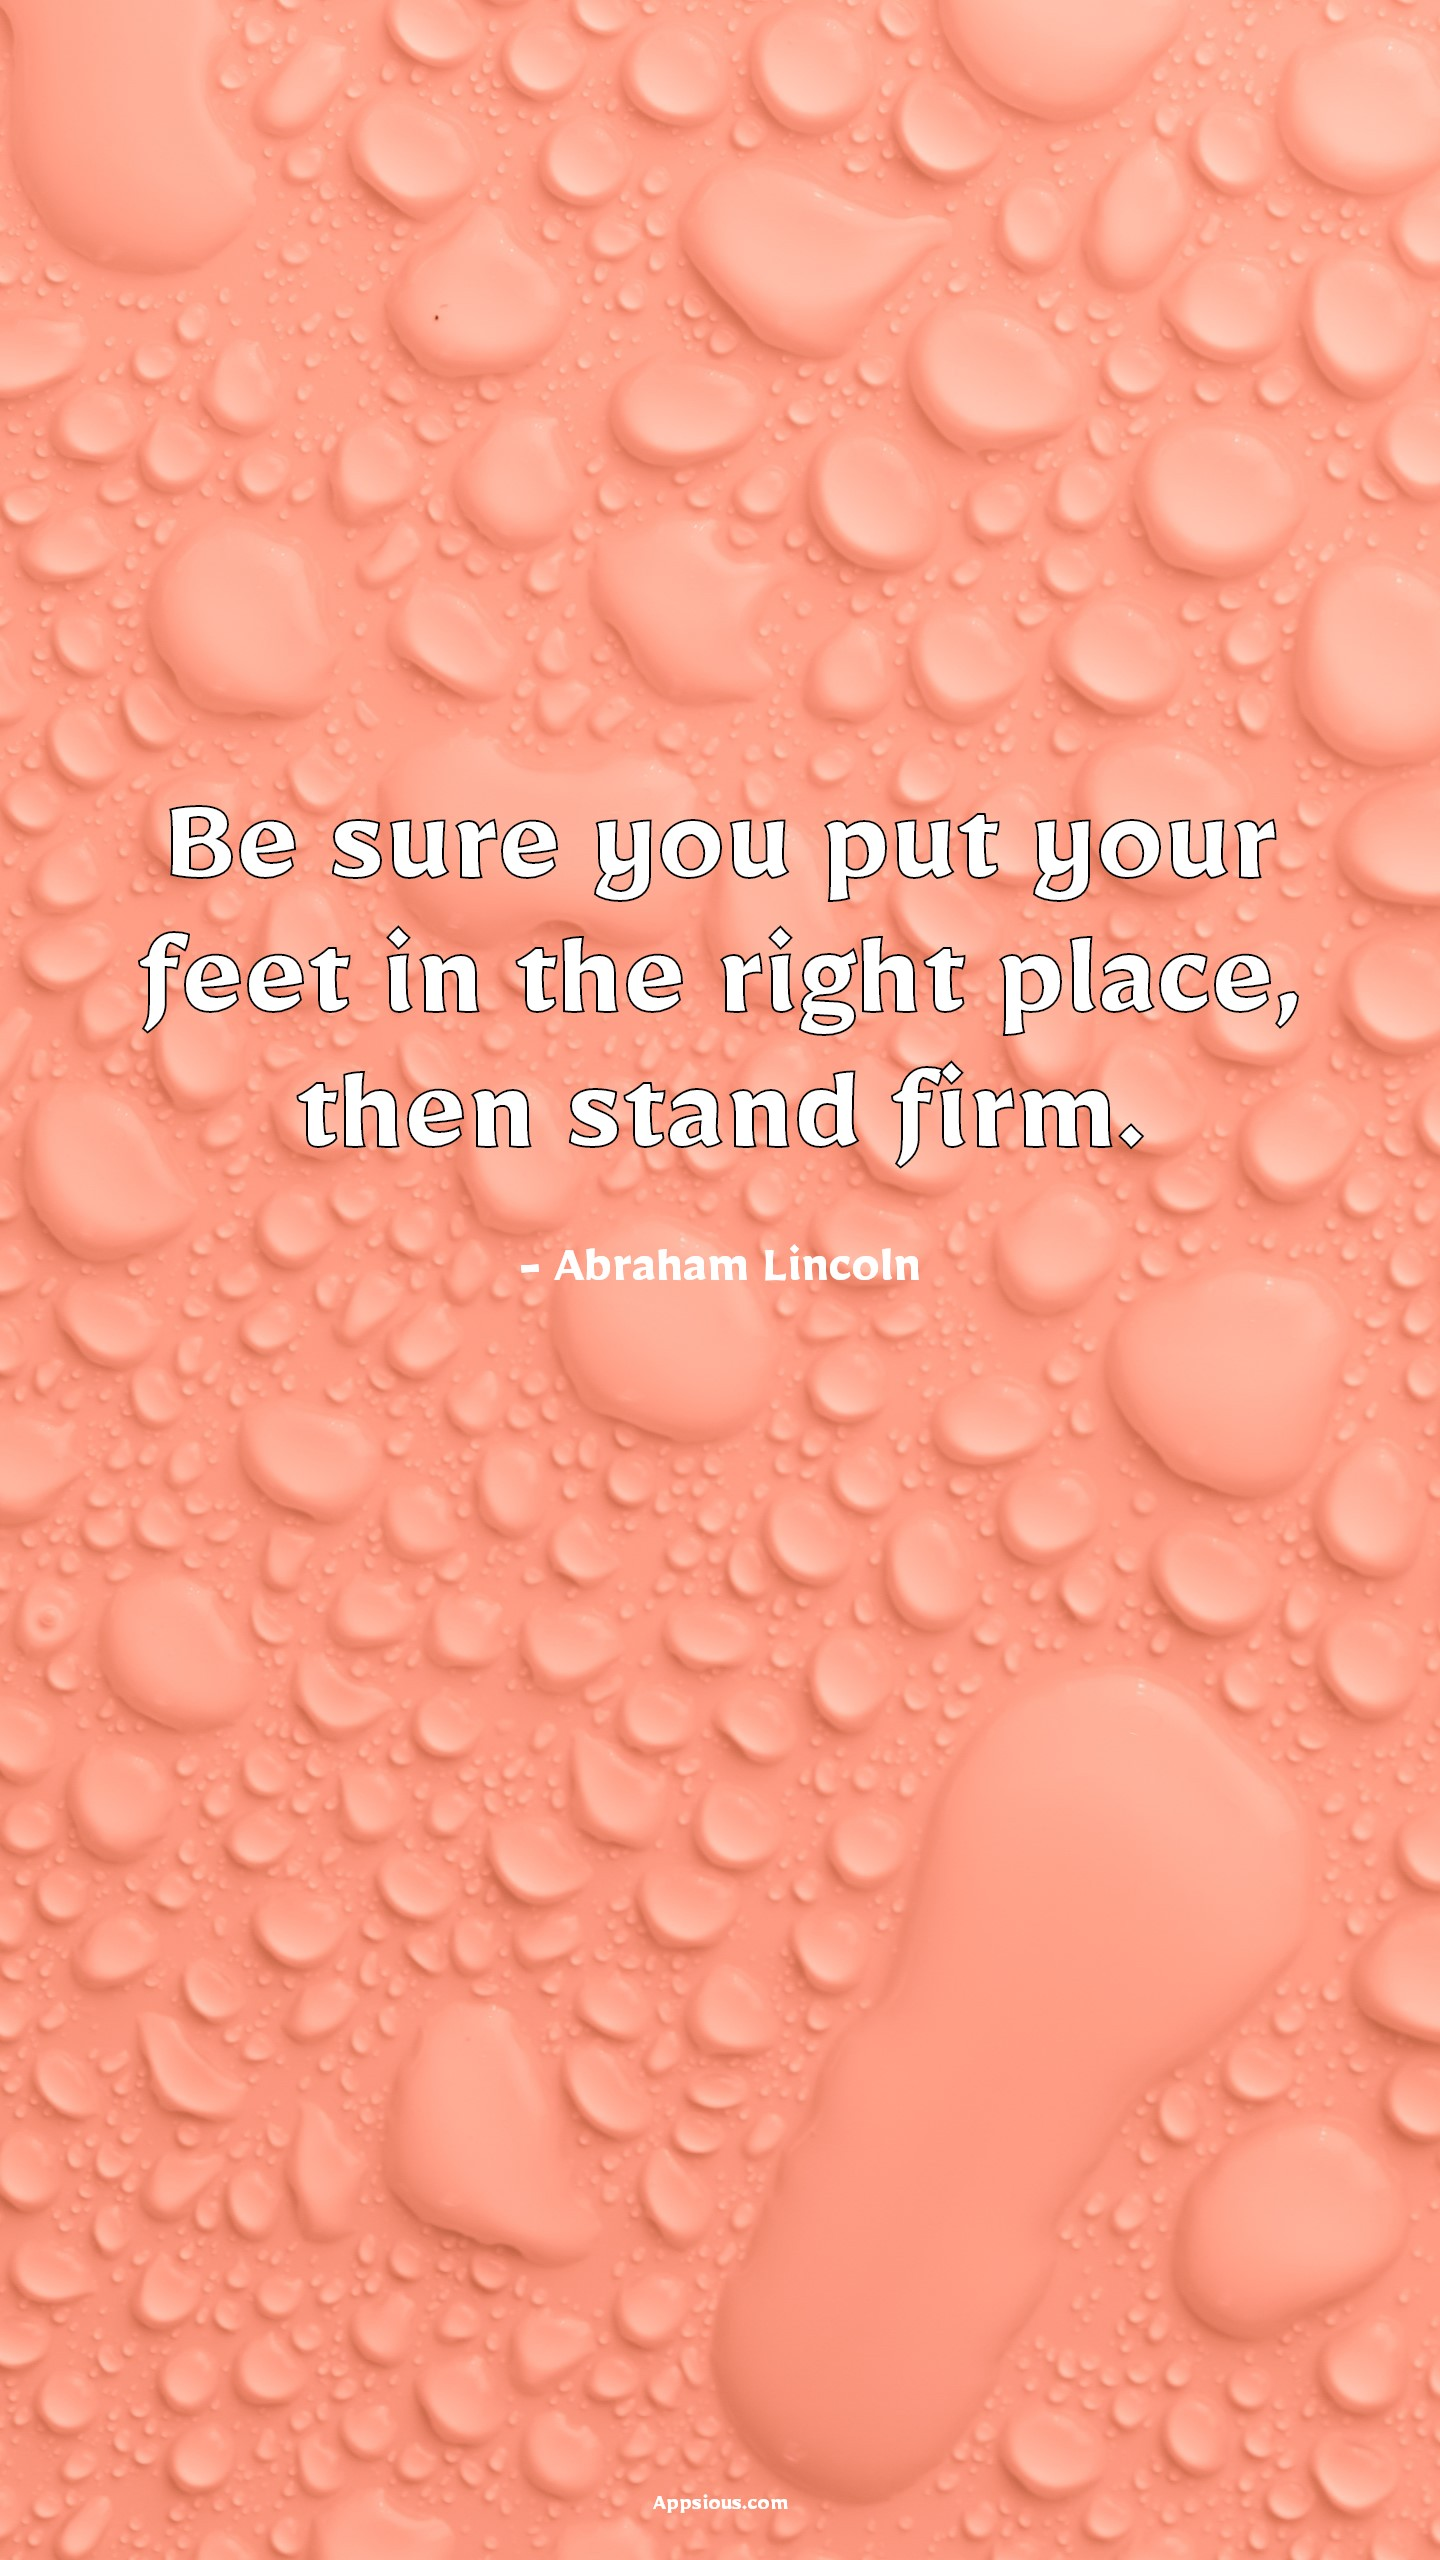 Be sure you put your feet in the right place, then stand firm.